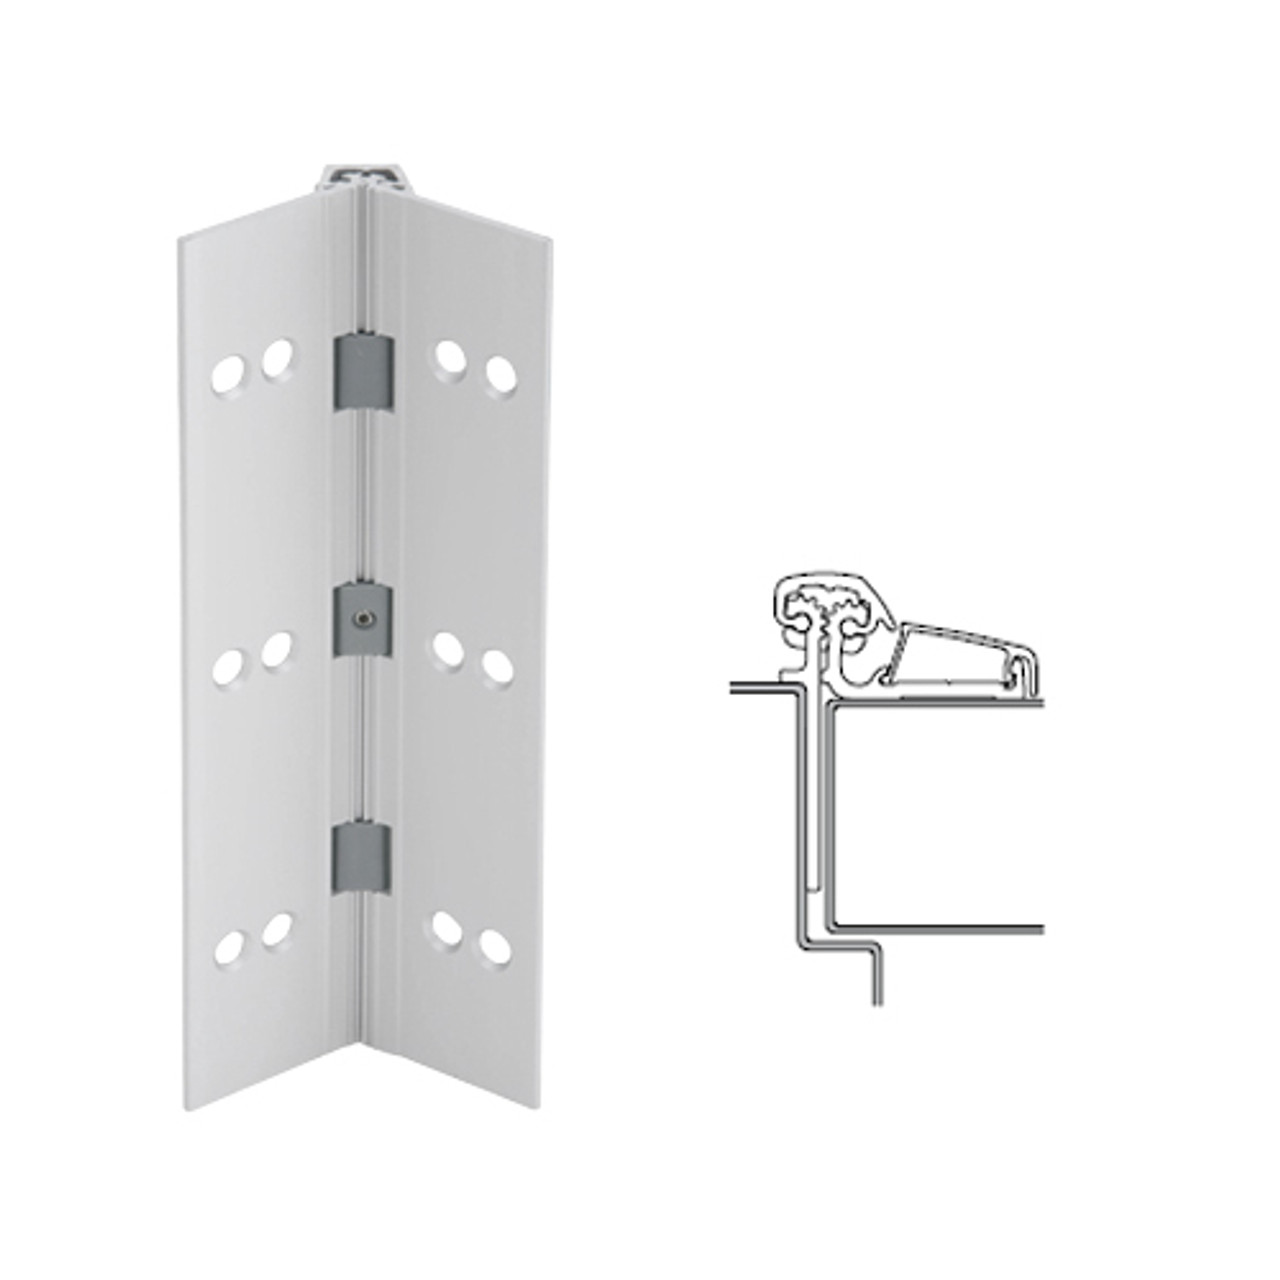 053XY-US28-85-TF IVES Adjustable Half Surface Continuous Geared Hinges with Thread Forming Screws in Satin Aluminum